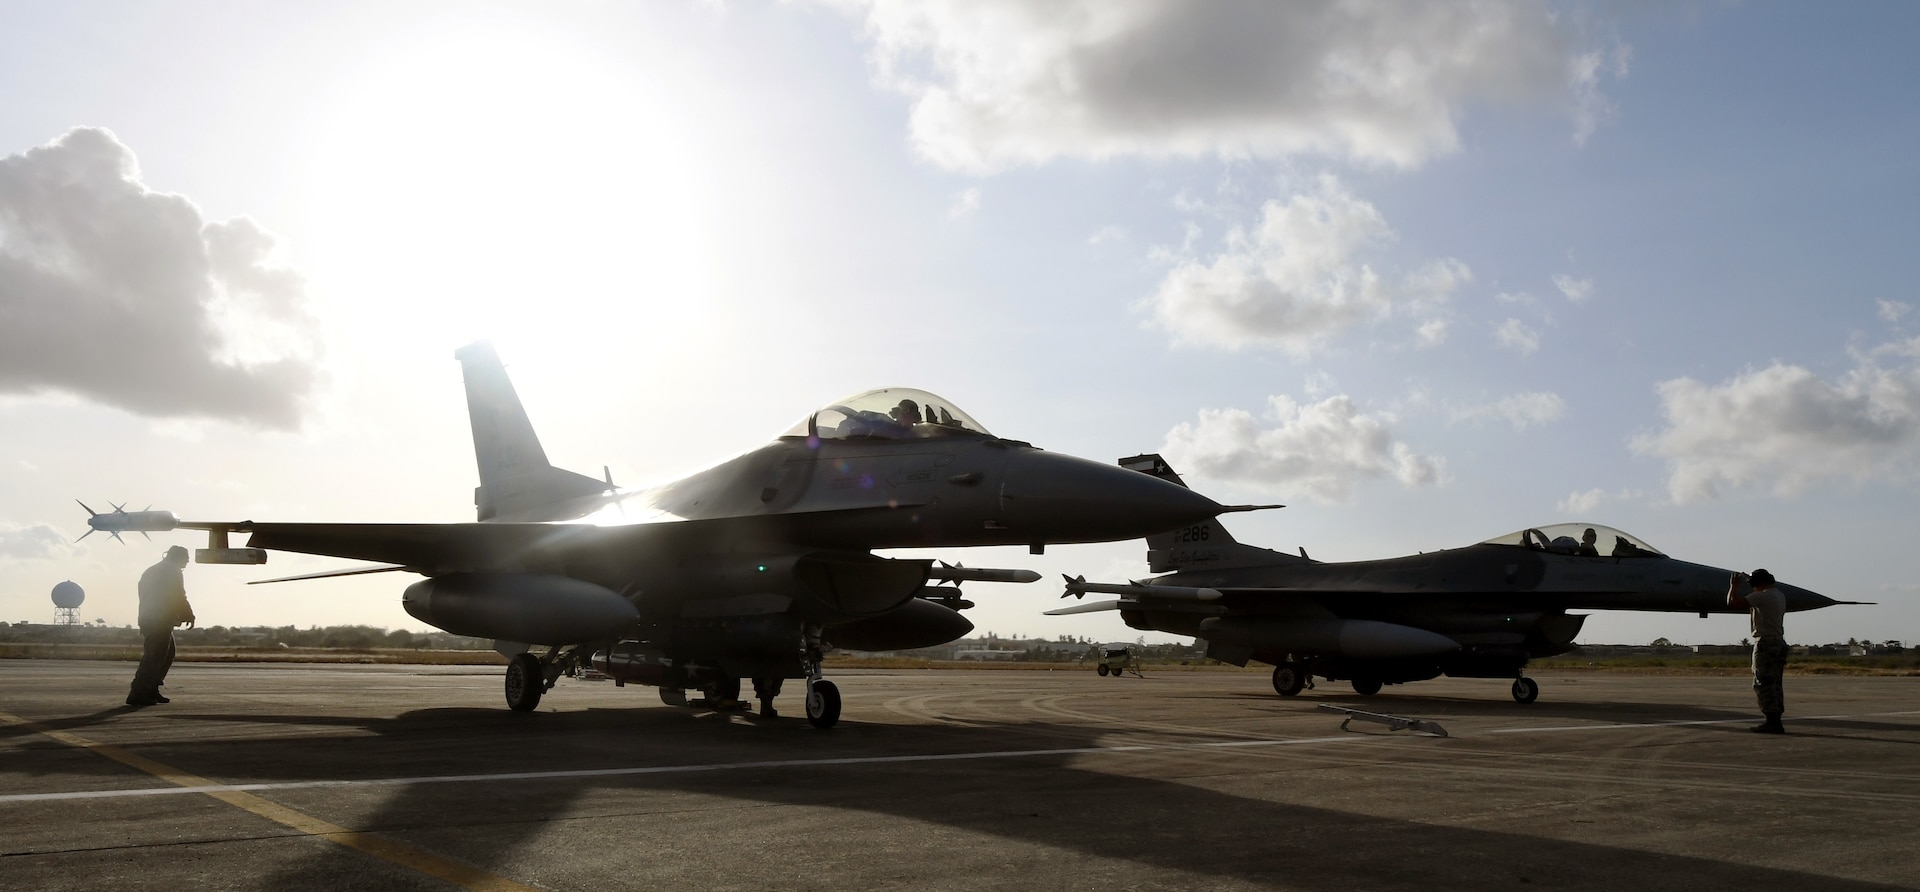 Two F-16 Fighting Falcons from the 149th Fighter Wing, Air National Guard, line the apron at Natal Air Force Base in Natal, Brazil, Nov. 16, 2018. Members of the 149th FW took part in CRUZEX 2018, a multi-national combat air exercise, held Nov. 18-30.